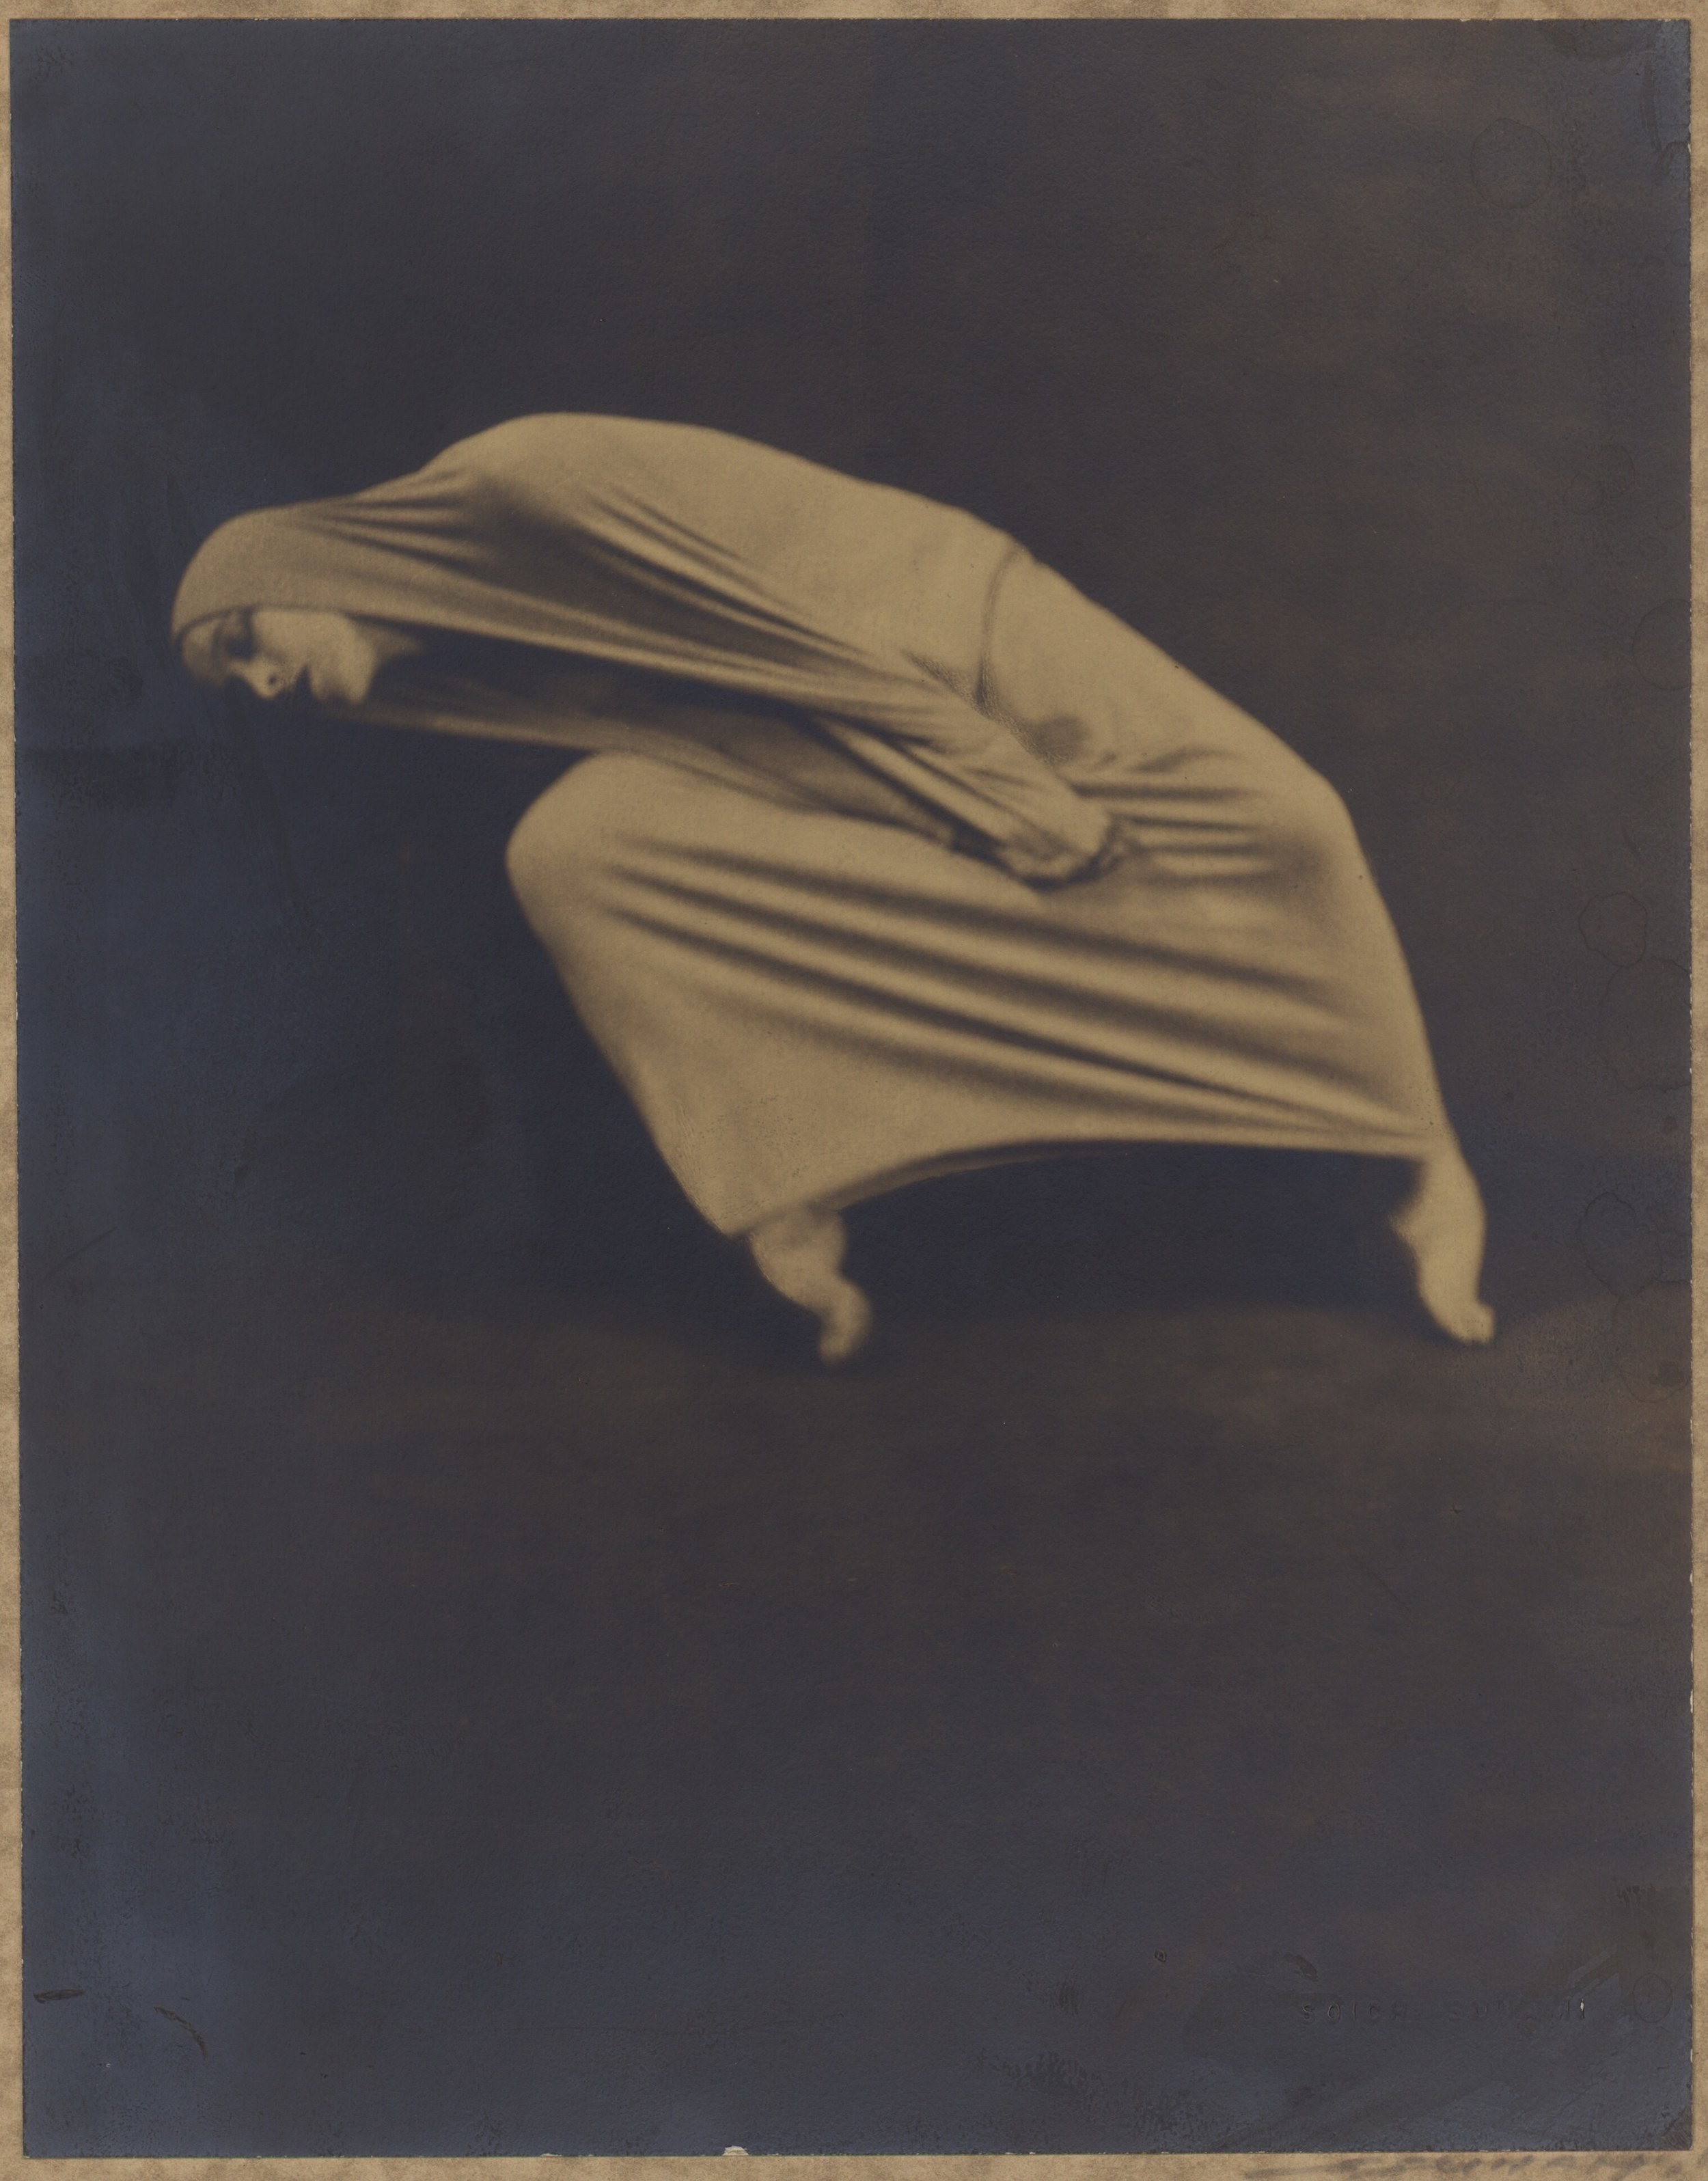 Martha Graham by Soichi Sunami in  Lamentation   via  The Library of Congress